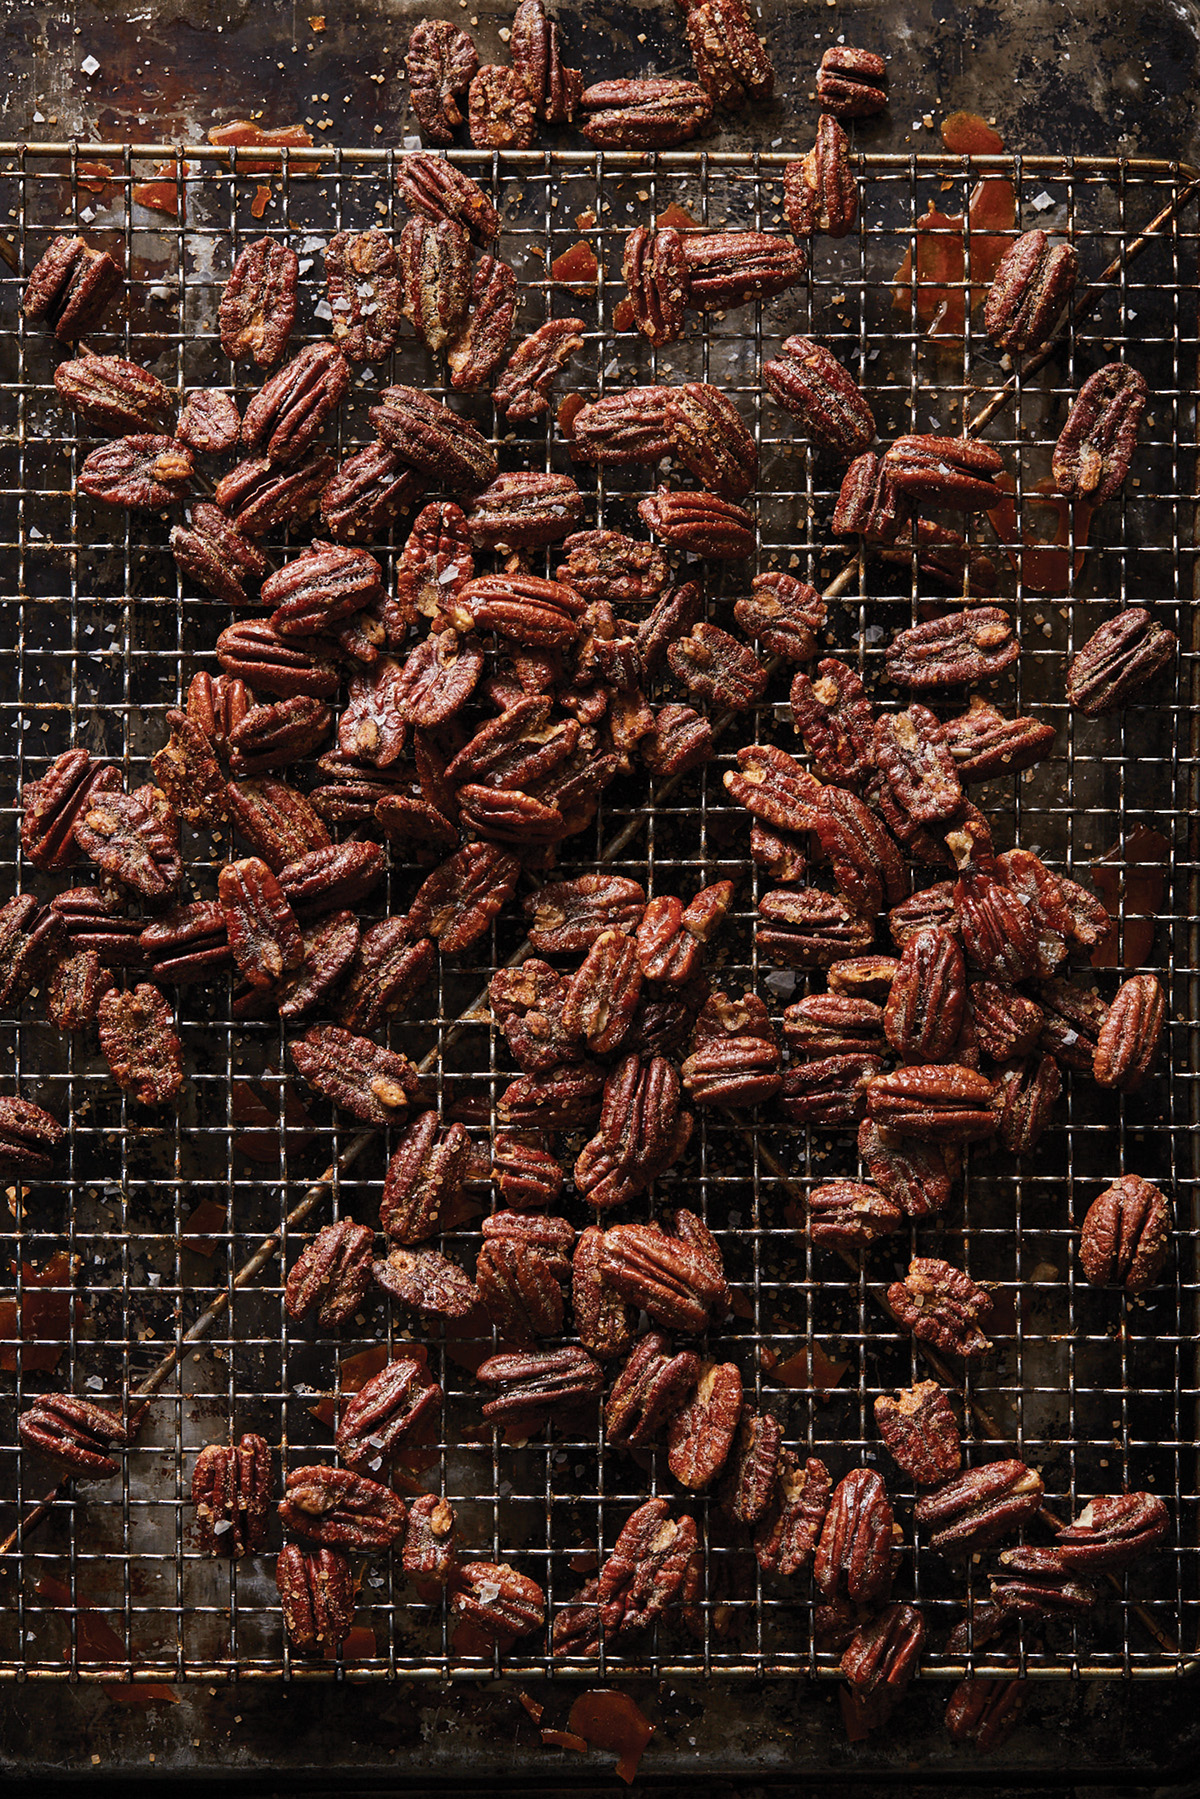 candied_pecans.jpg